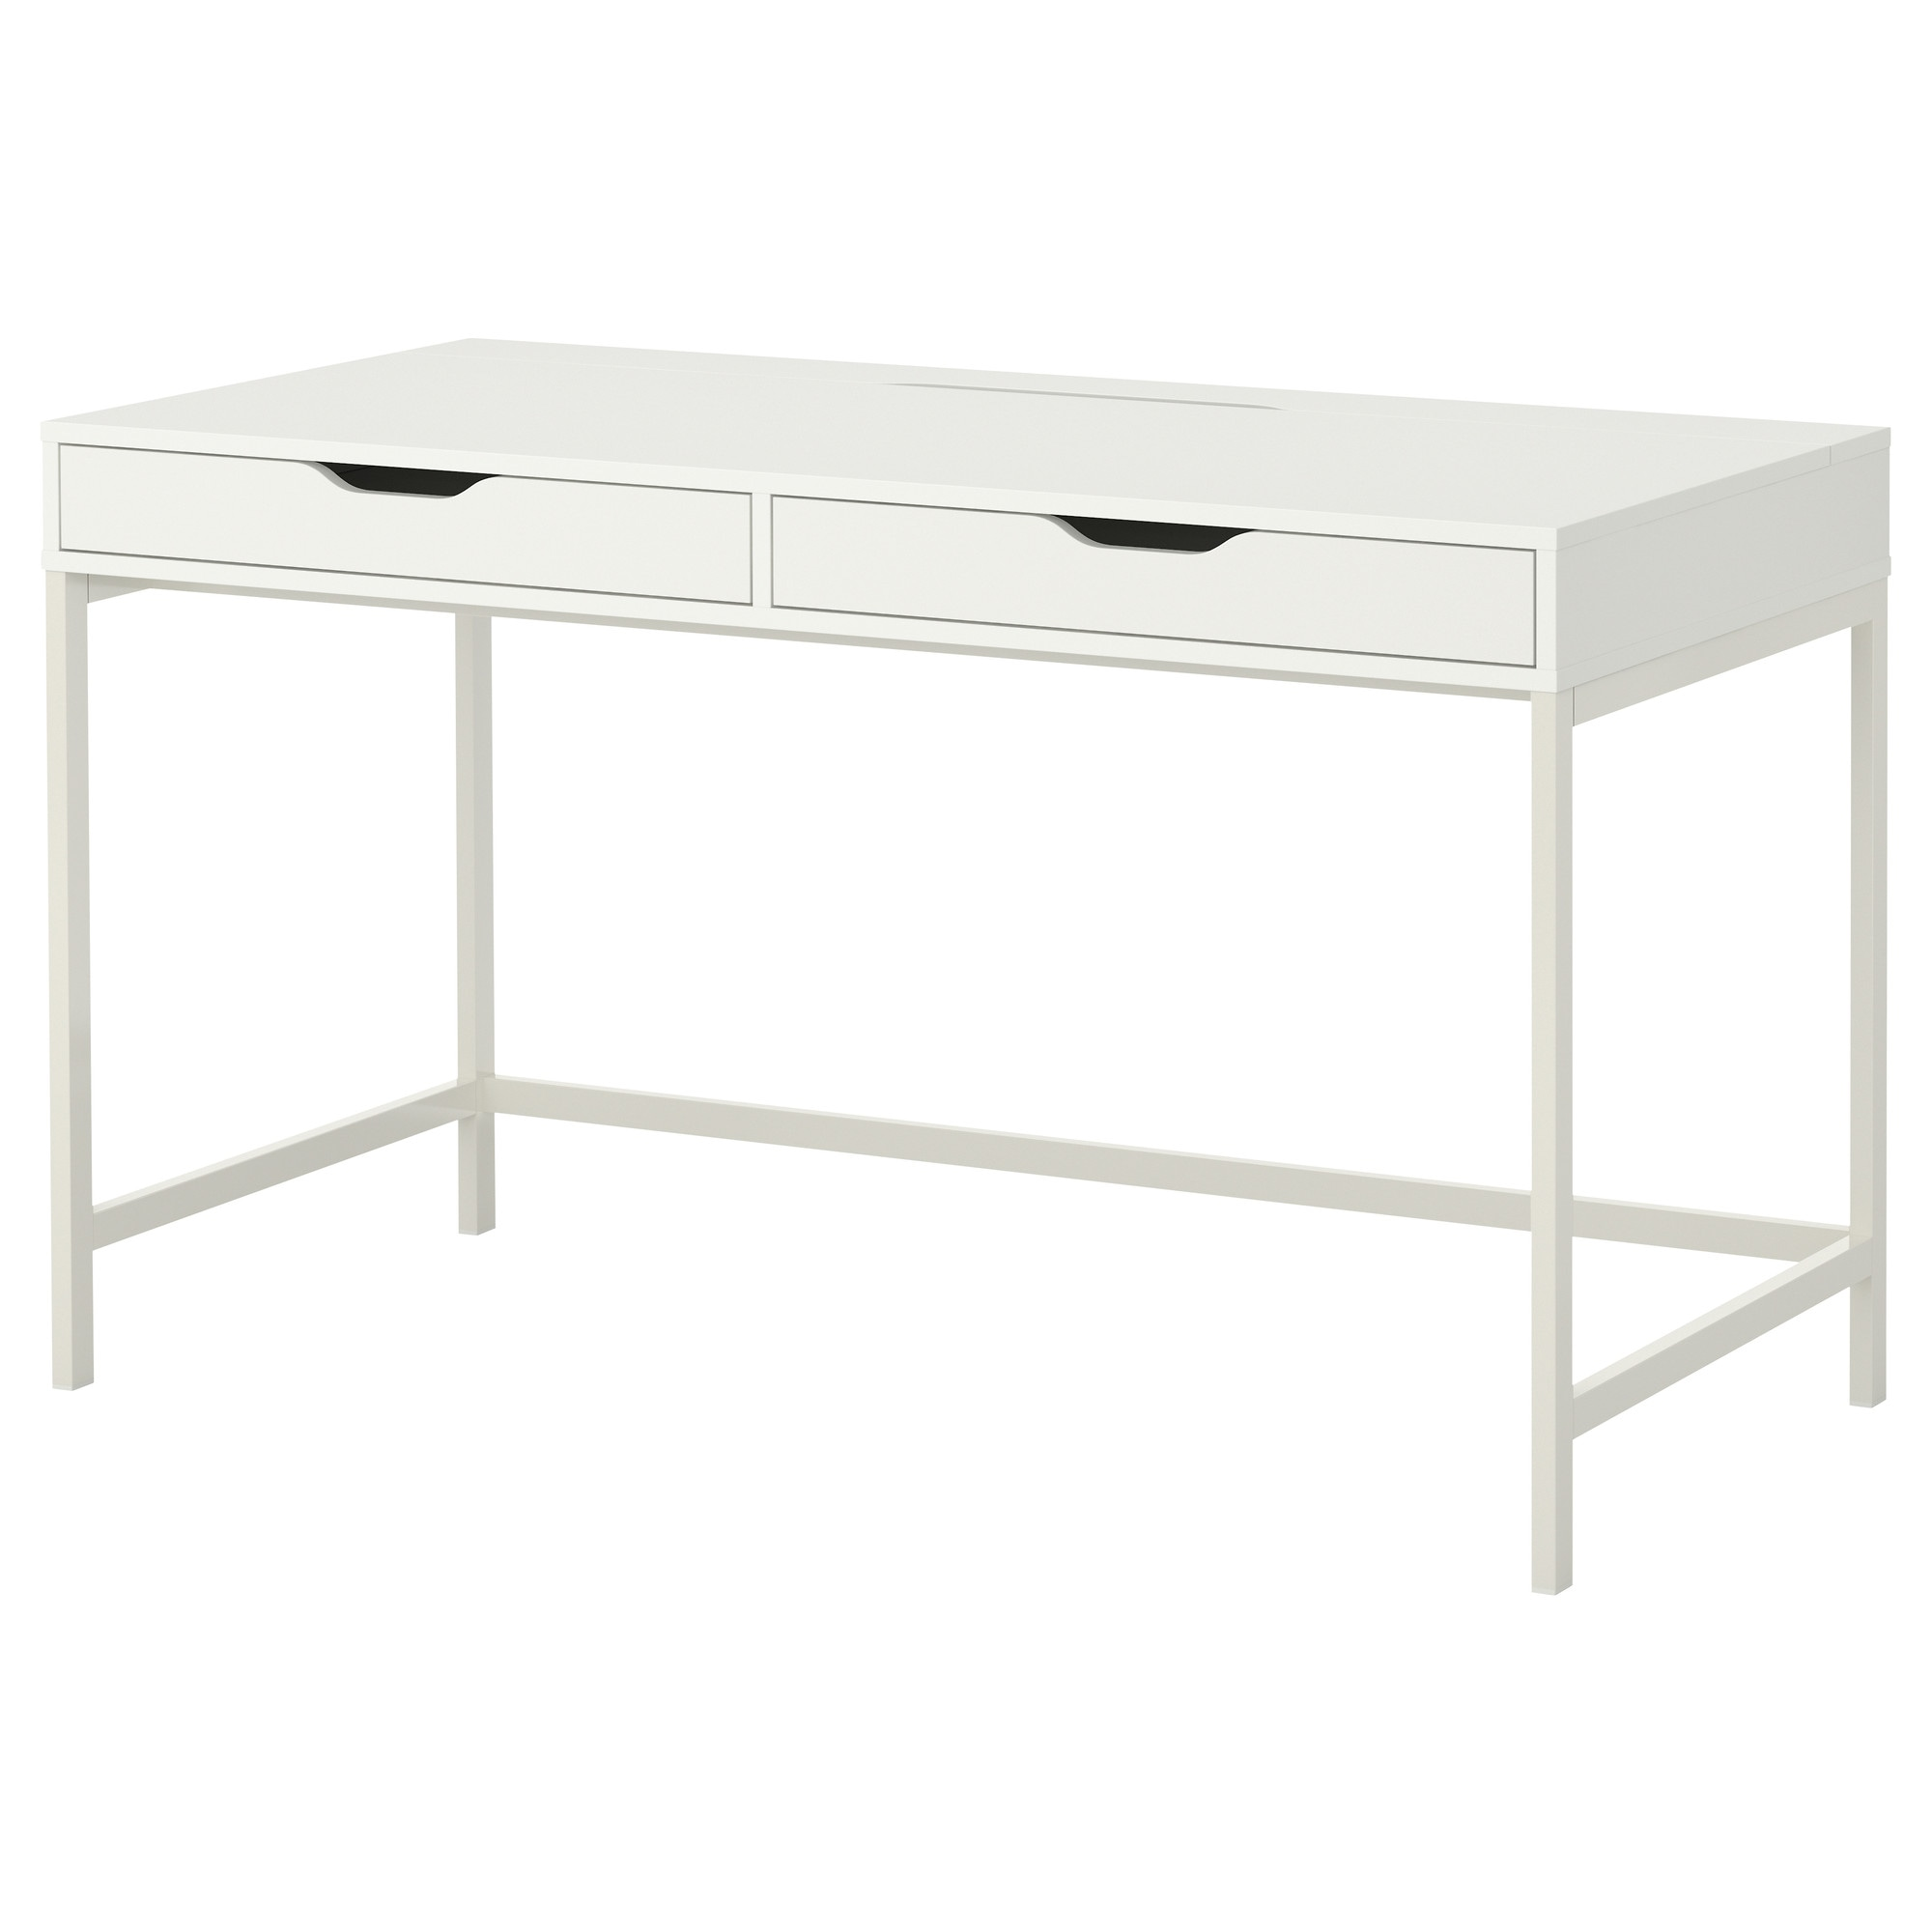 ALEX Desk white IKEA